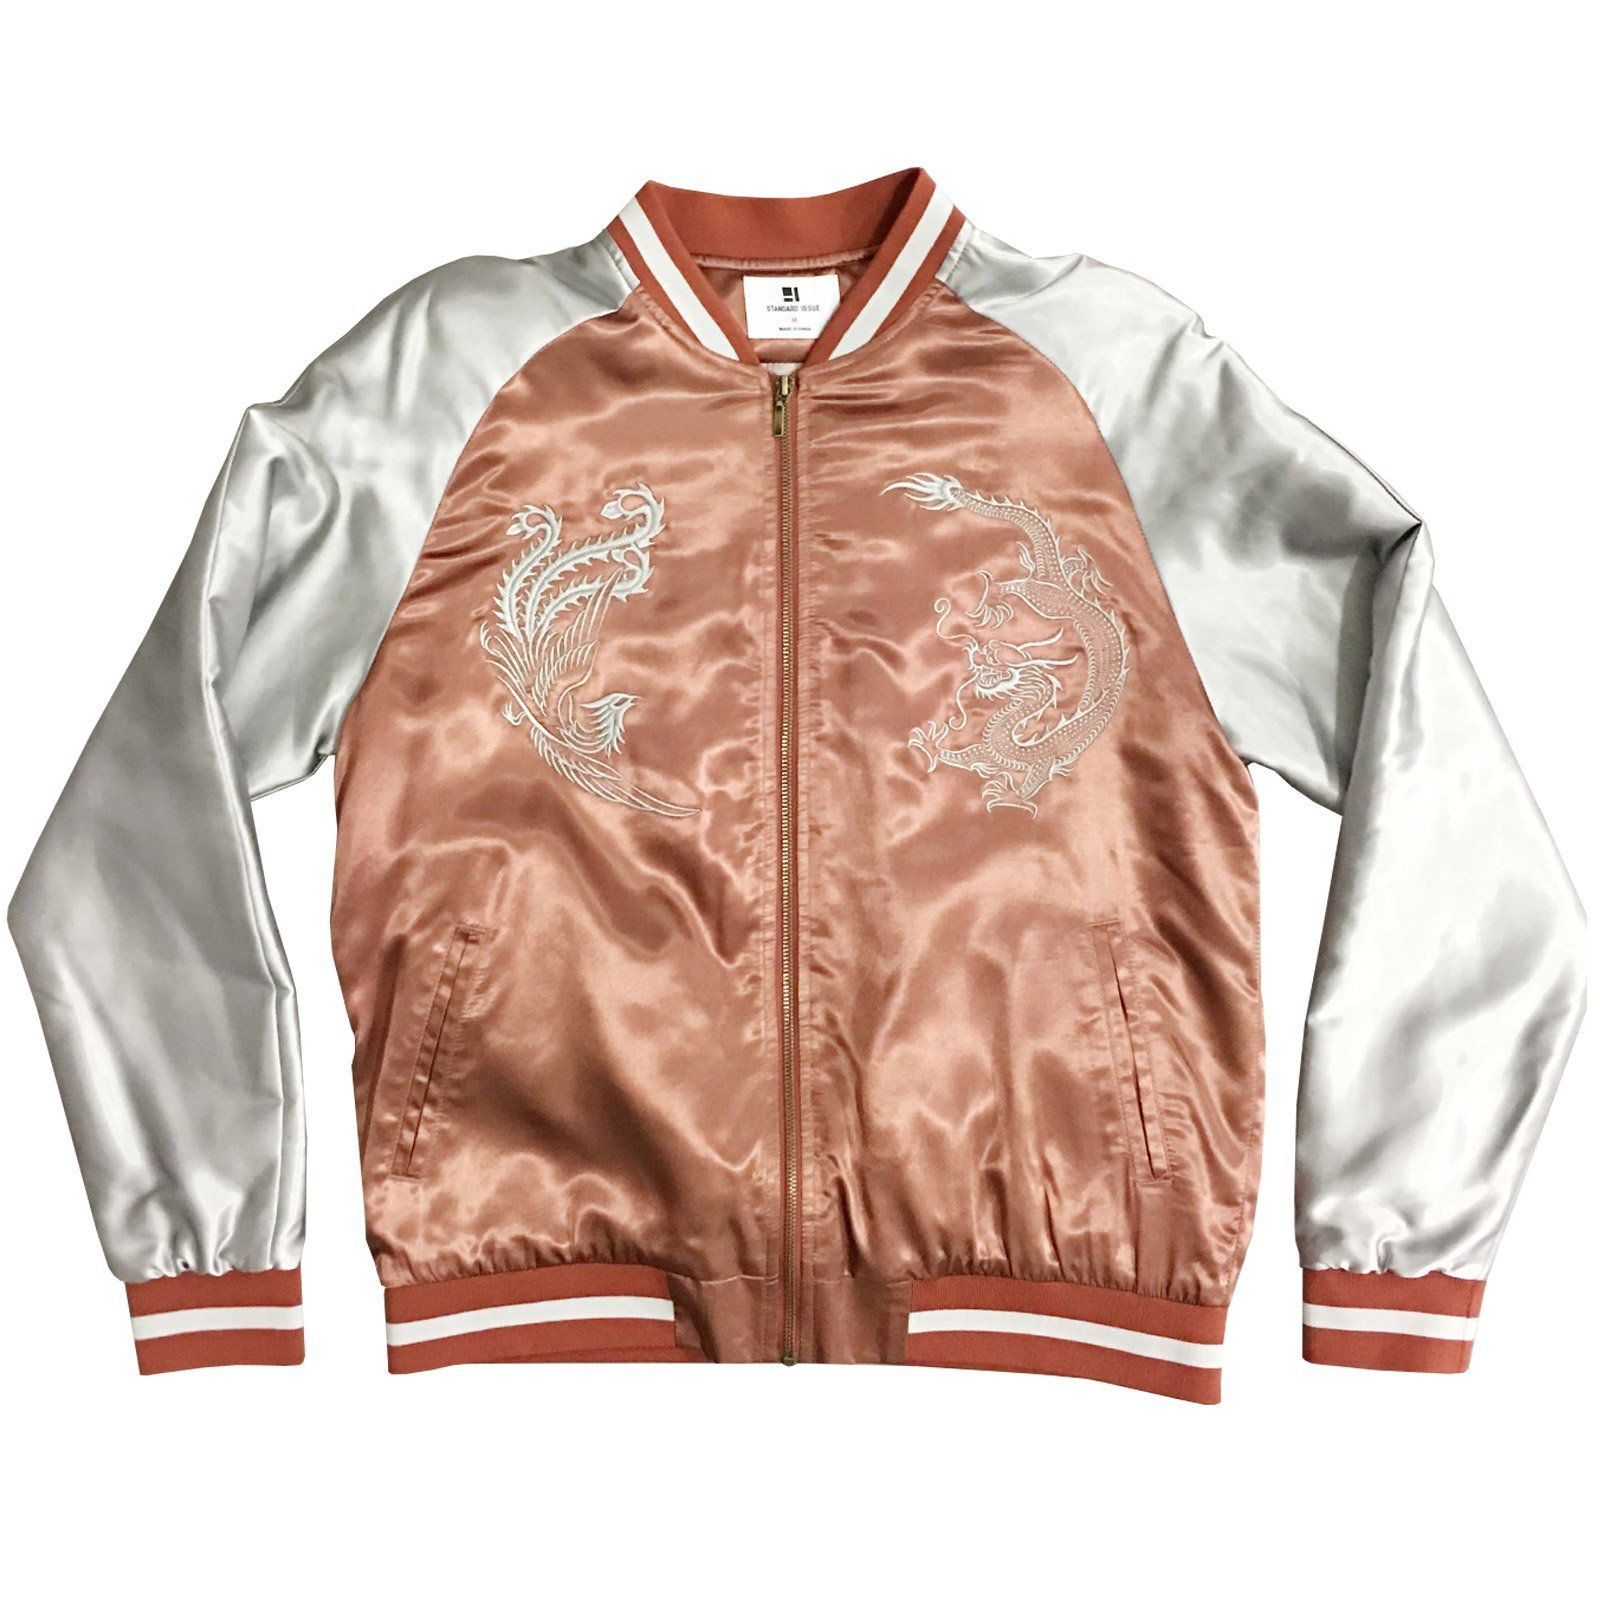 Standard Issue Embroidered Phoenix Dragon Souvenir Jacket - Rose/Silver